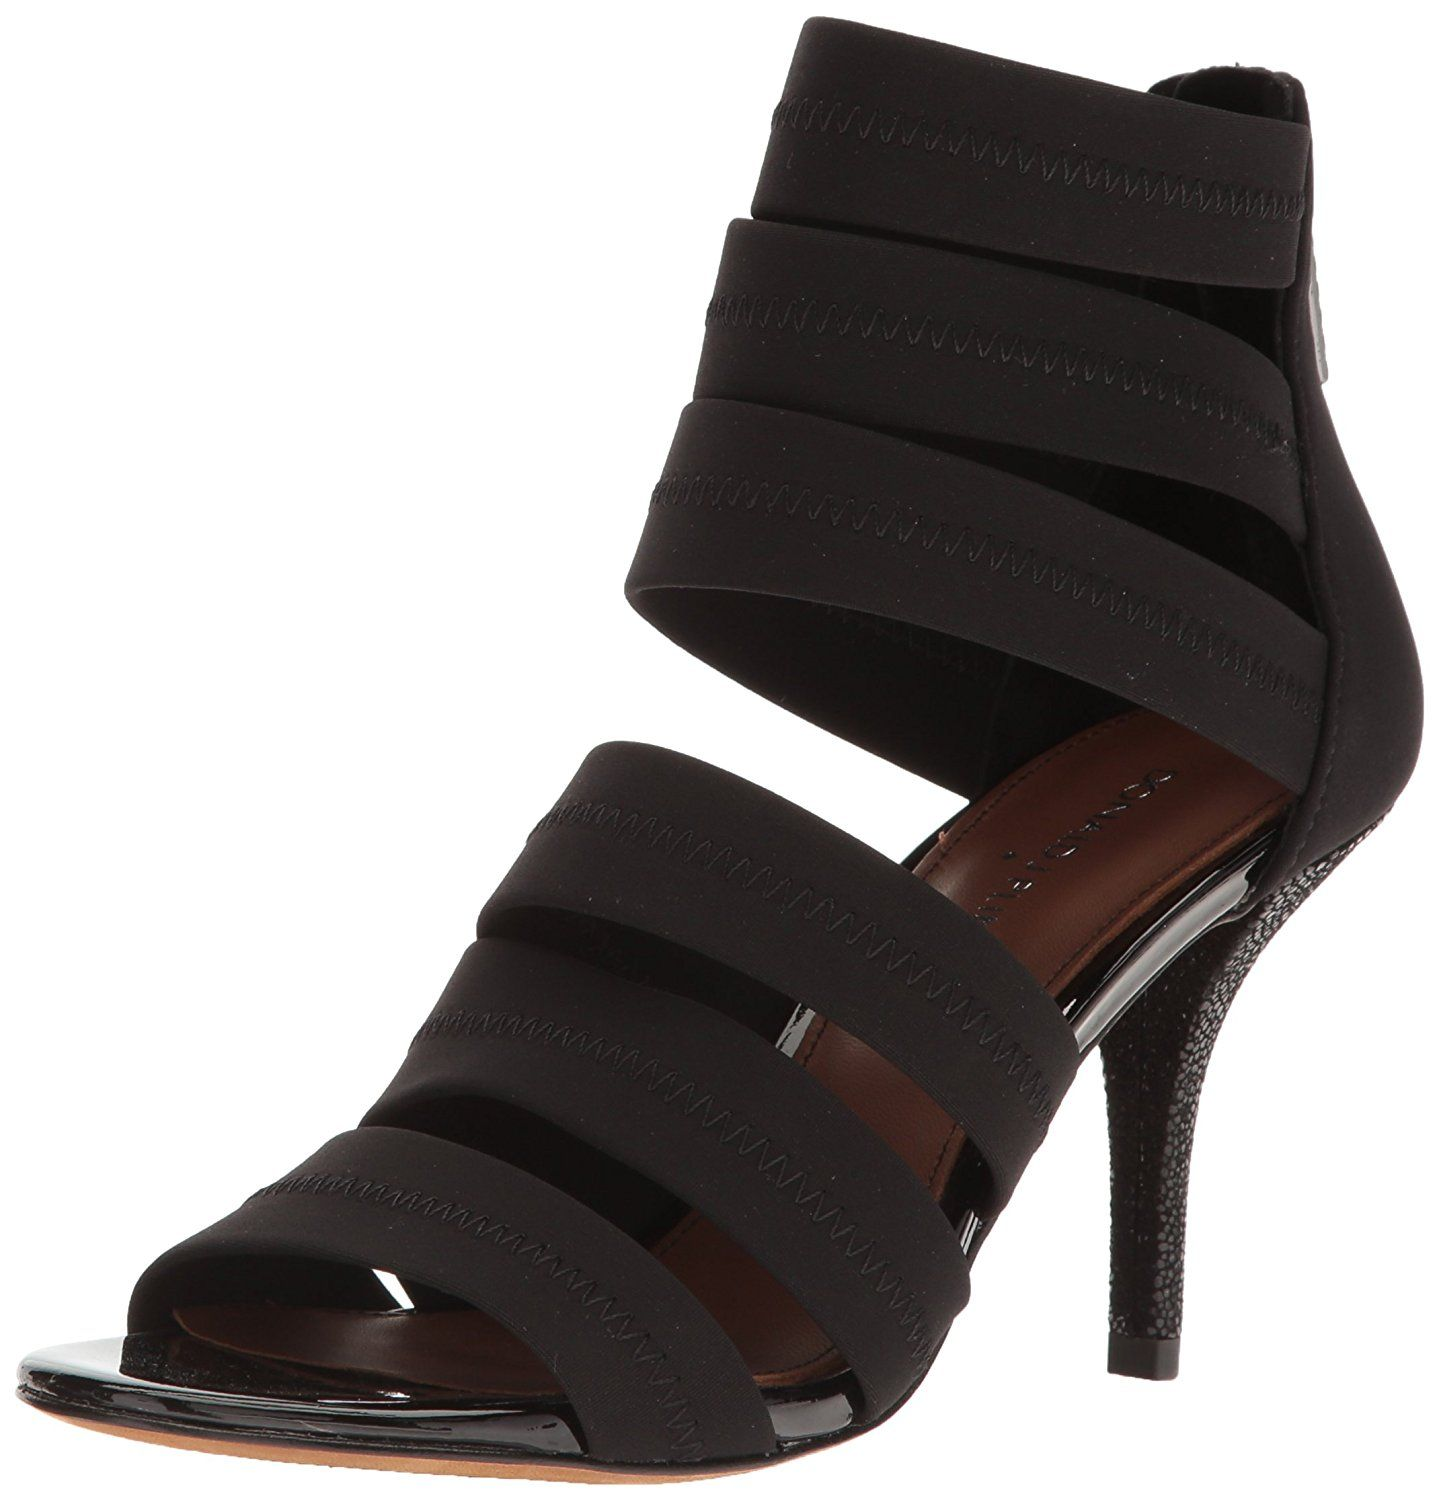 1299a29053a Donald J Pliner Women s Gigee-D Dress Sandal   Read more reviews of the  product